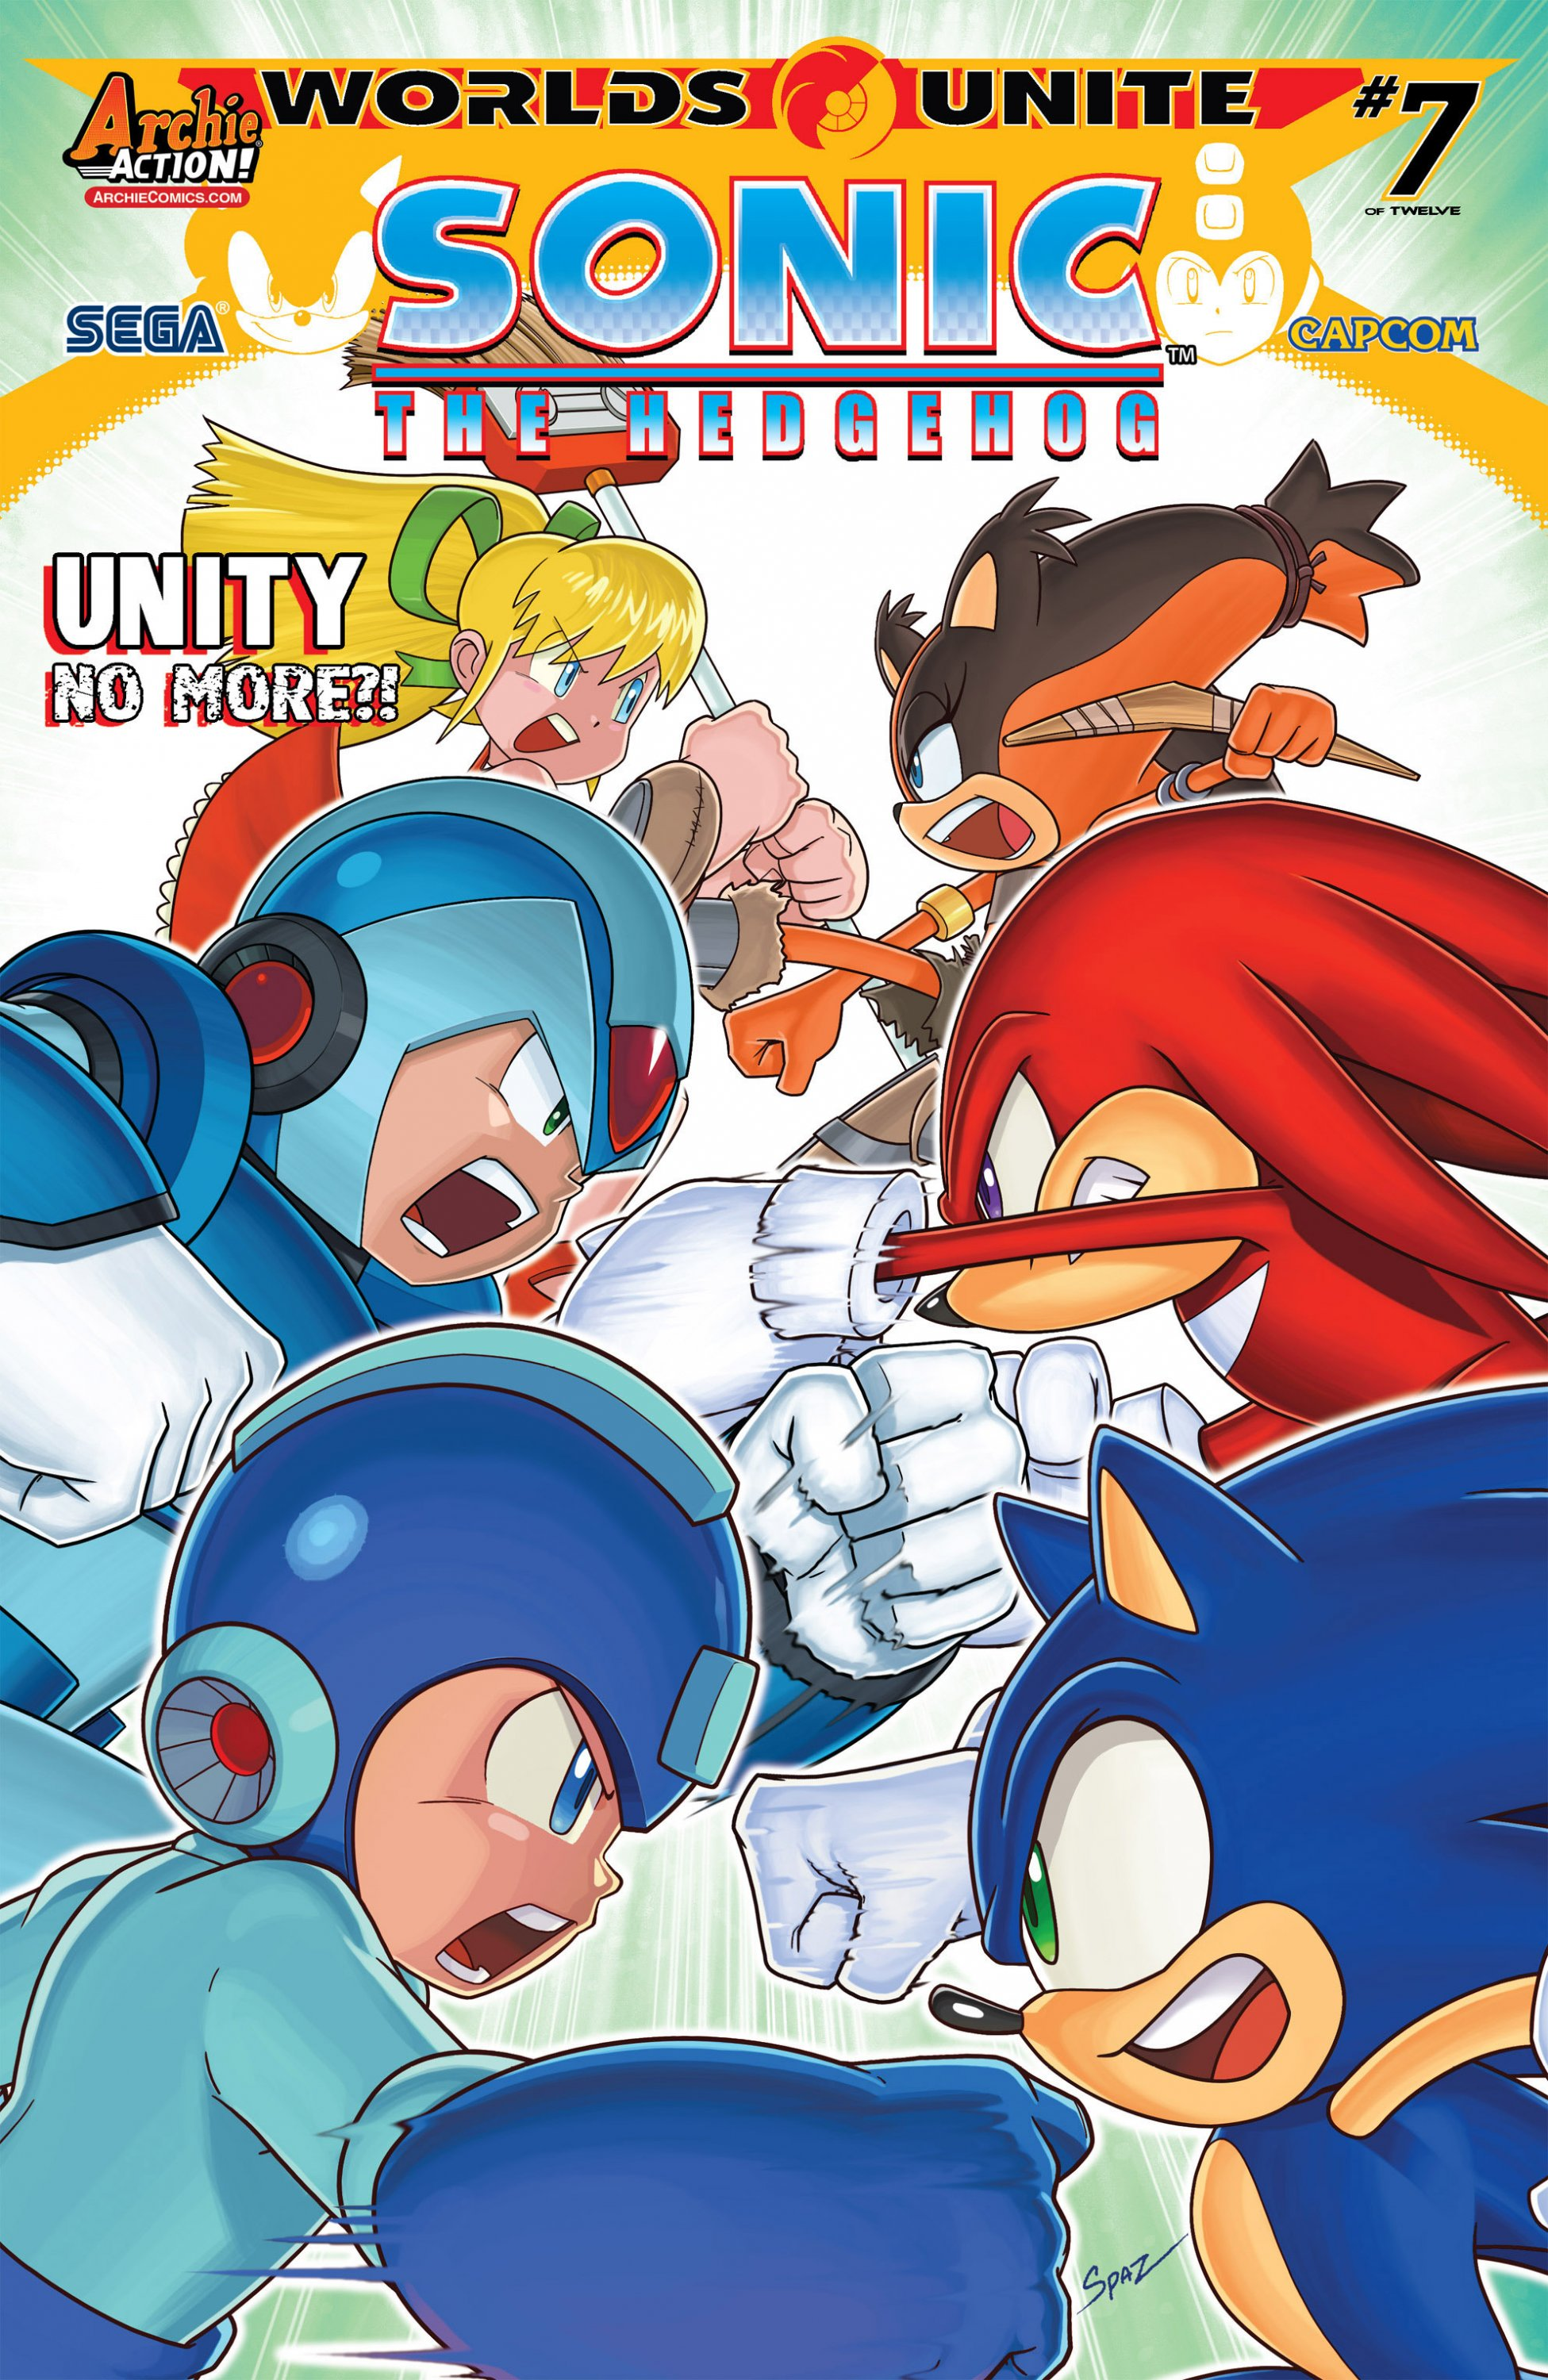 Sonic the Hedgehog 274 (September 2015)